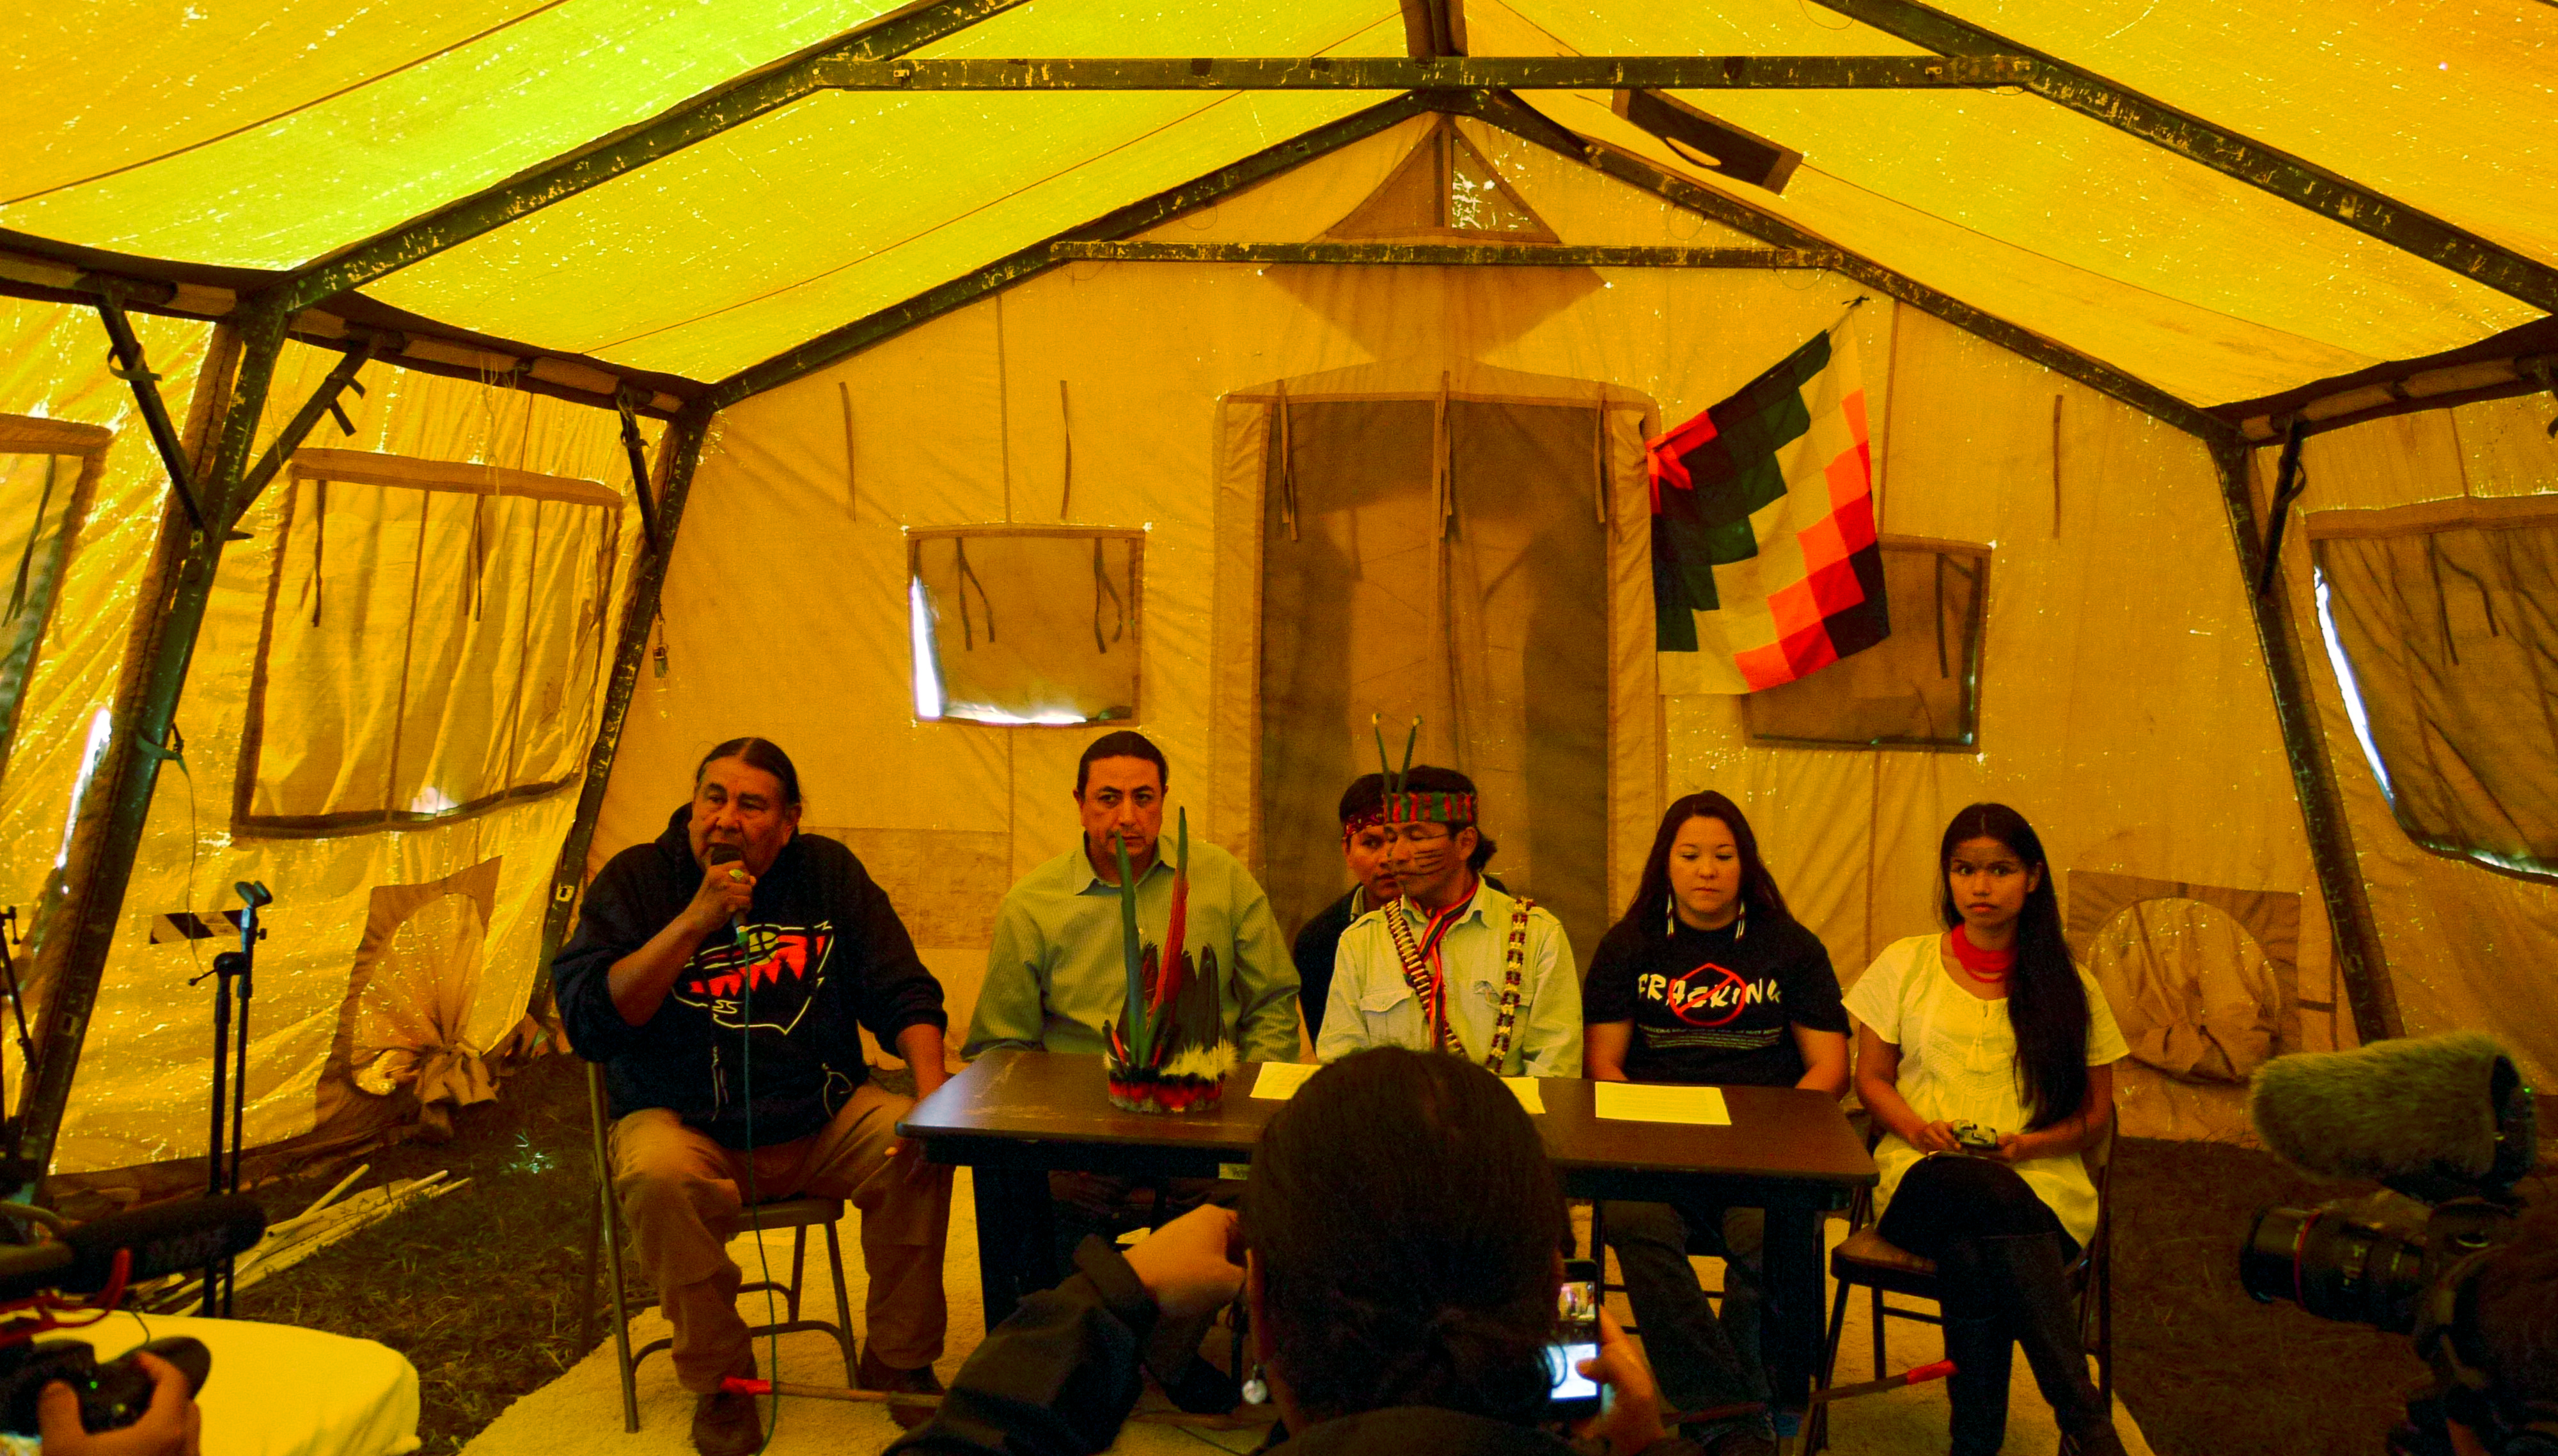 A press conference with (from left to right) Tom Goldtooth of the Indigenous Environmental Network, Standing Rock Chairman Dave Archambault II, Ecuadorian environmental and indigenous rights activist Franco Viteri, Kandi Mossett of the Indigenous Environmental Network and Ecuadorian environmental and indigenous rights activist Nina Gualinga, Sept. 14, 2016. (Sarah Jaffe for BillMoyers.com)